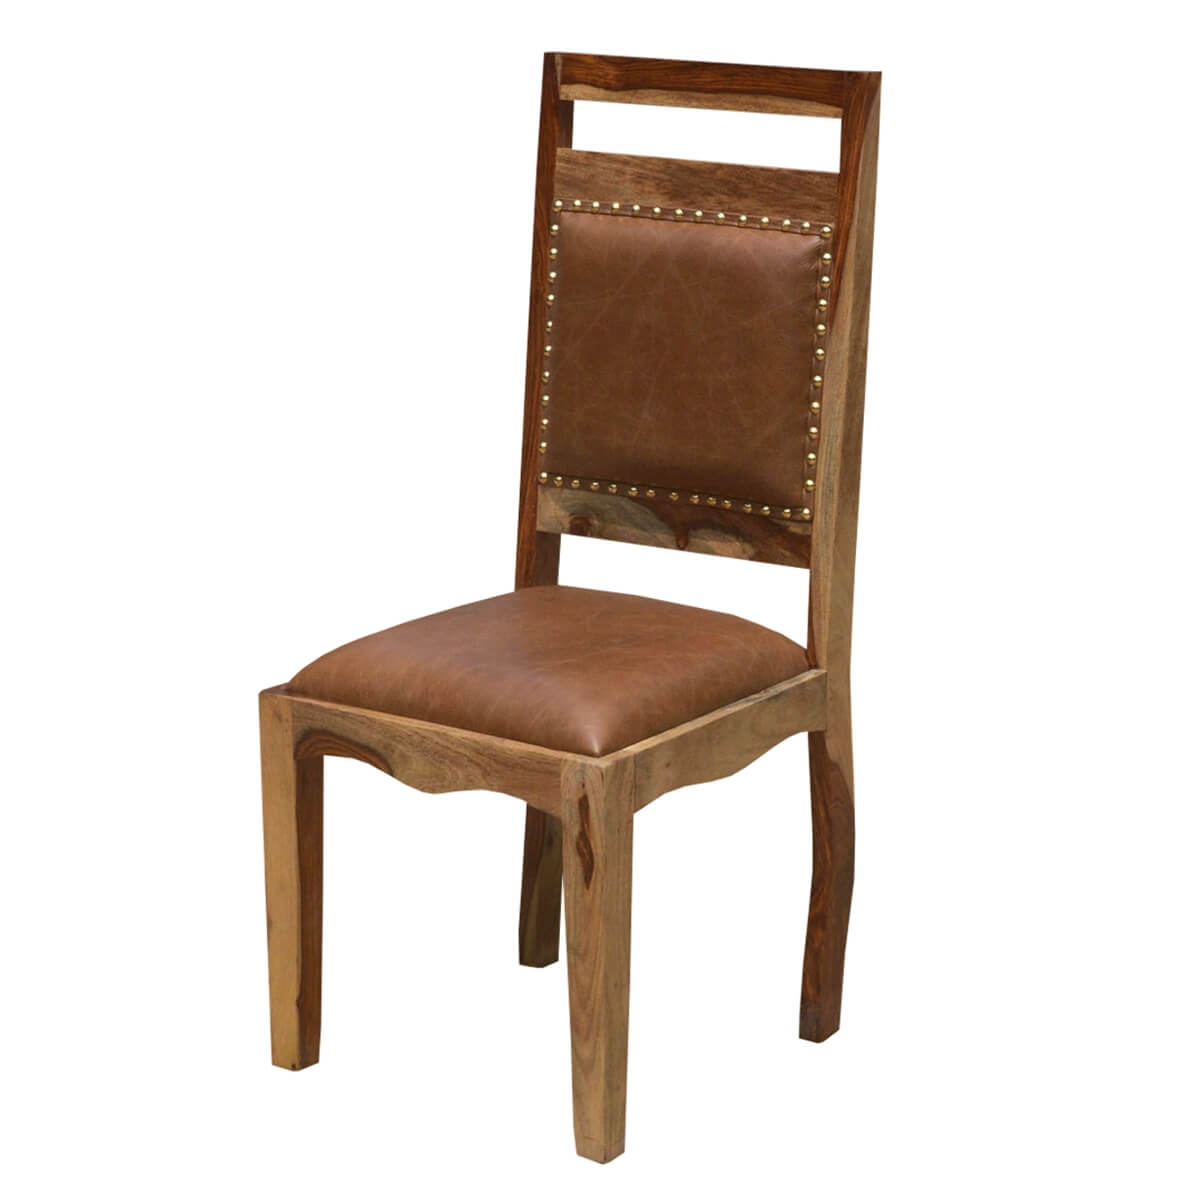 Wood Dining Chair Transitional Rustic Solid Wood And Leather Dining Chair